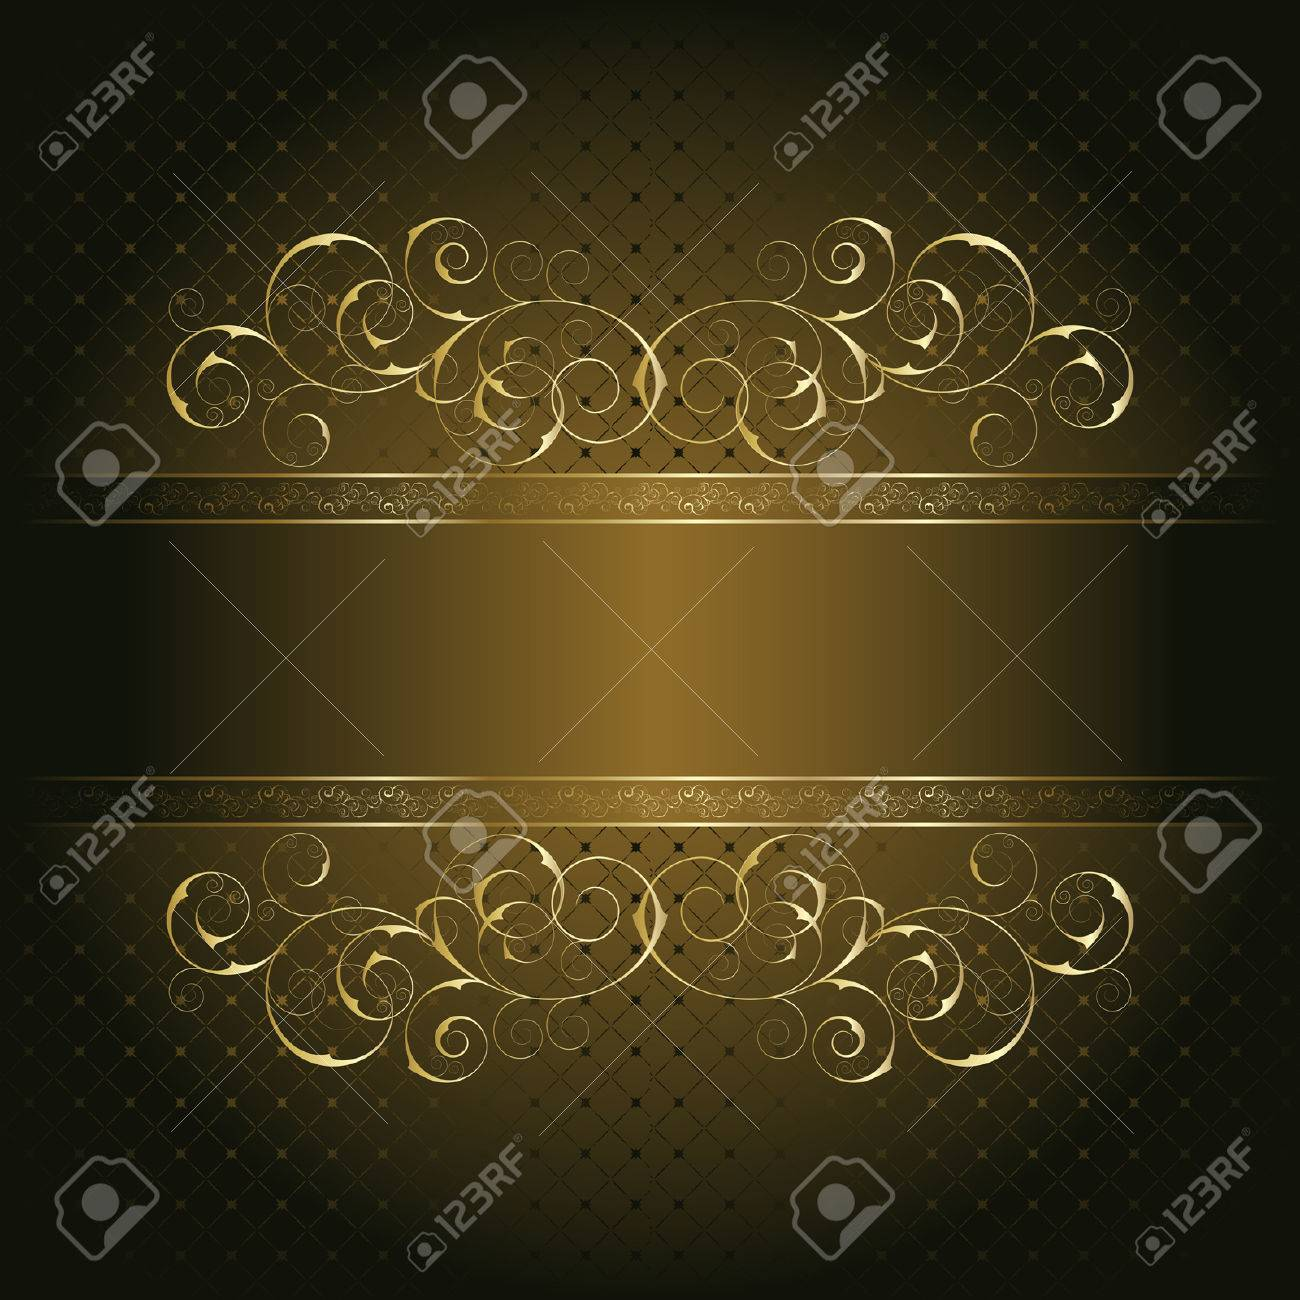 Retro frame on the brown floral background Stock Vector - 8105516